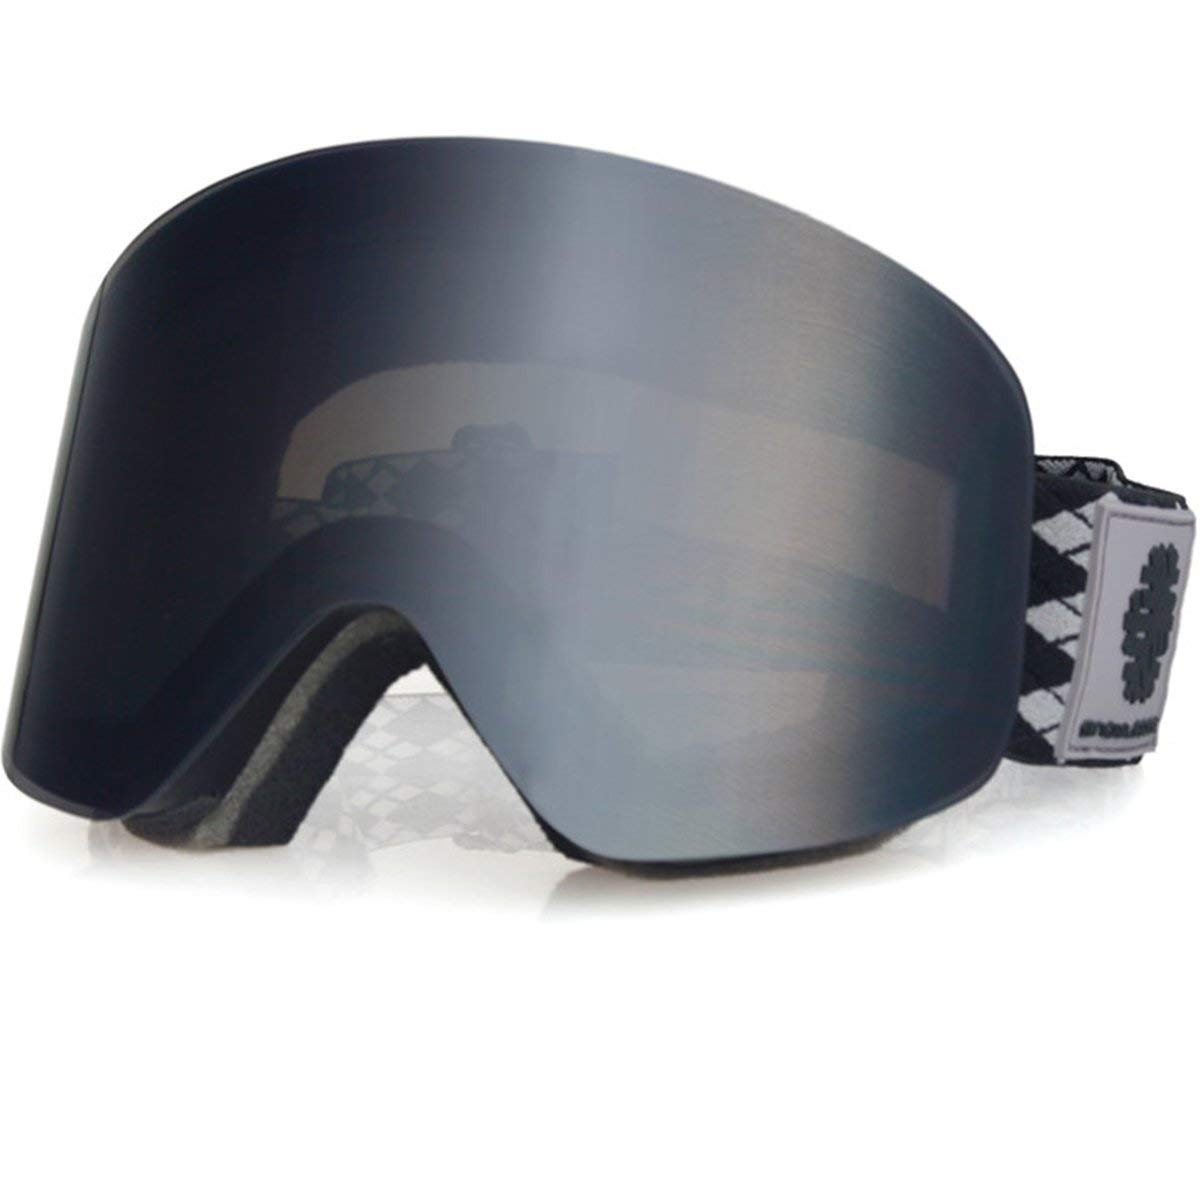 8c56784ea717 Get Quotations · Snowledge Ski Goggles - Frameless